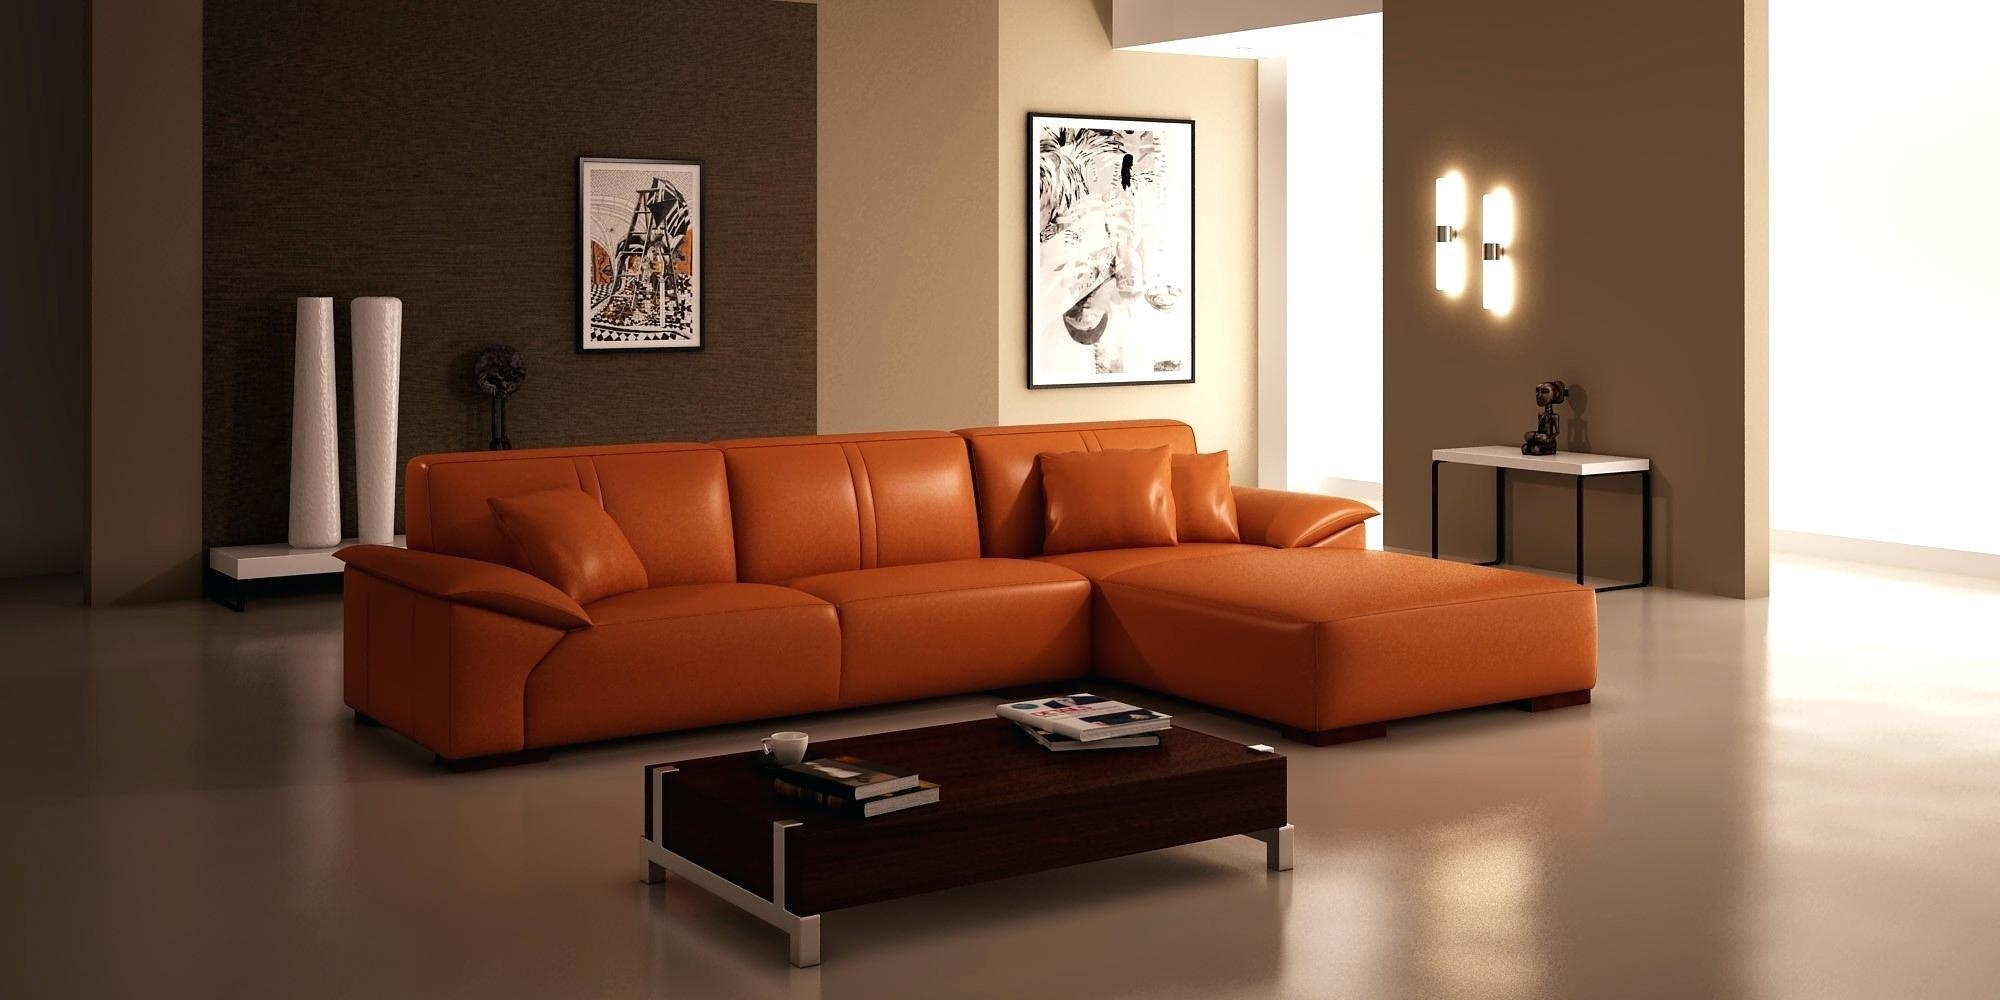 Sofas Center : Zed Orange Leather Sofa Burnt Sleeper Contemporary With Regard To Burnt Orange Leather Sofas (View 6 of 20)